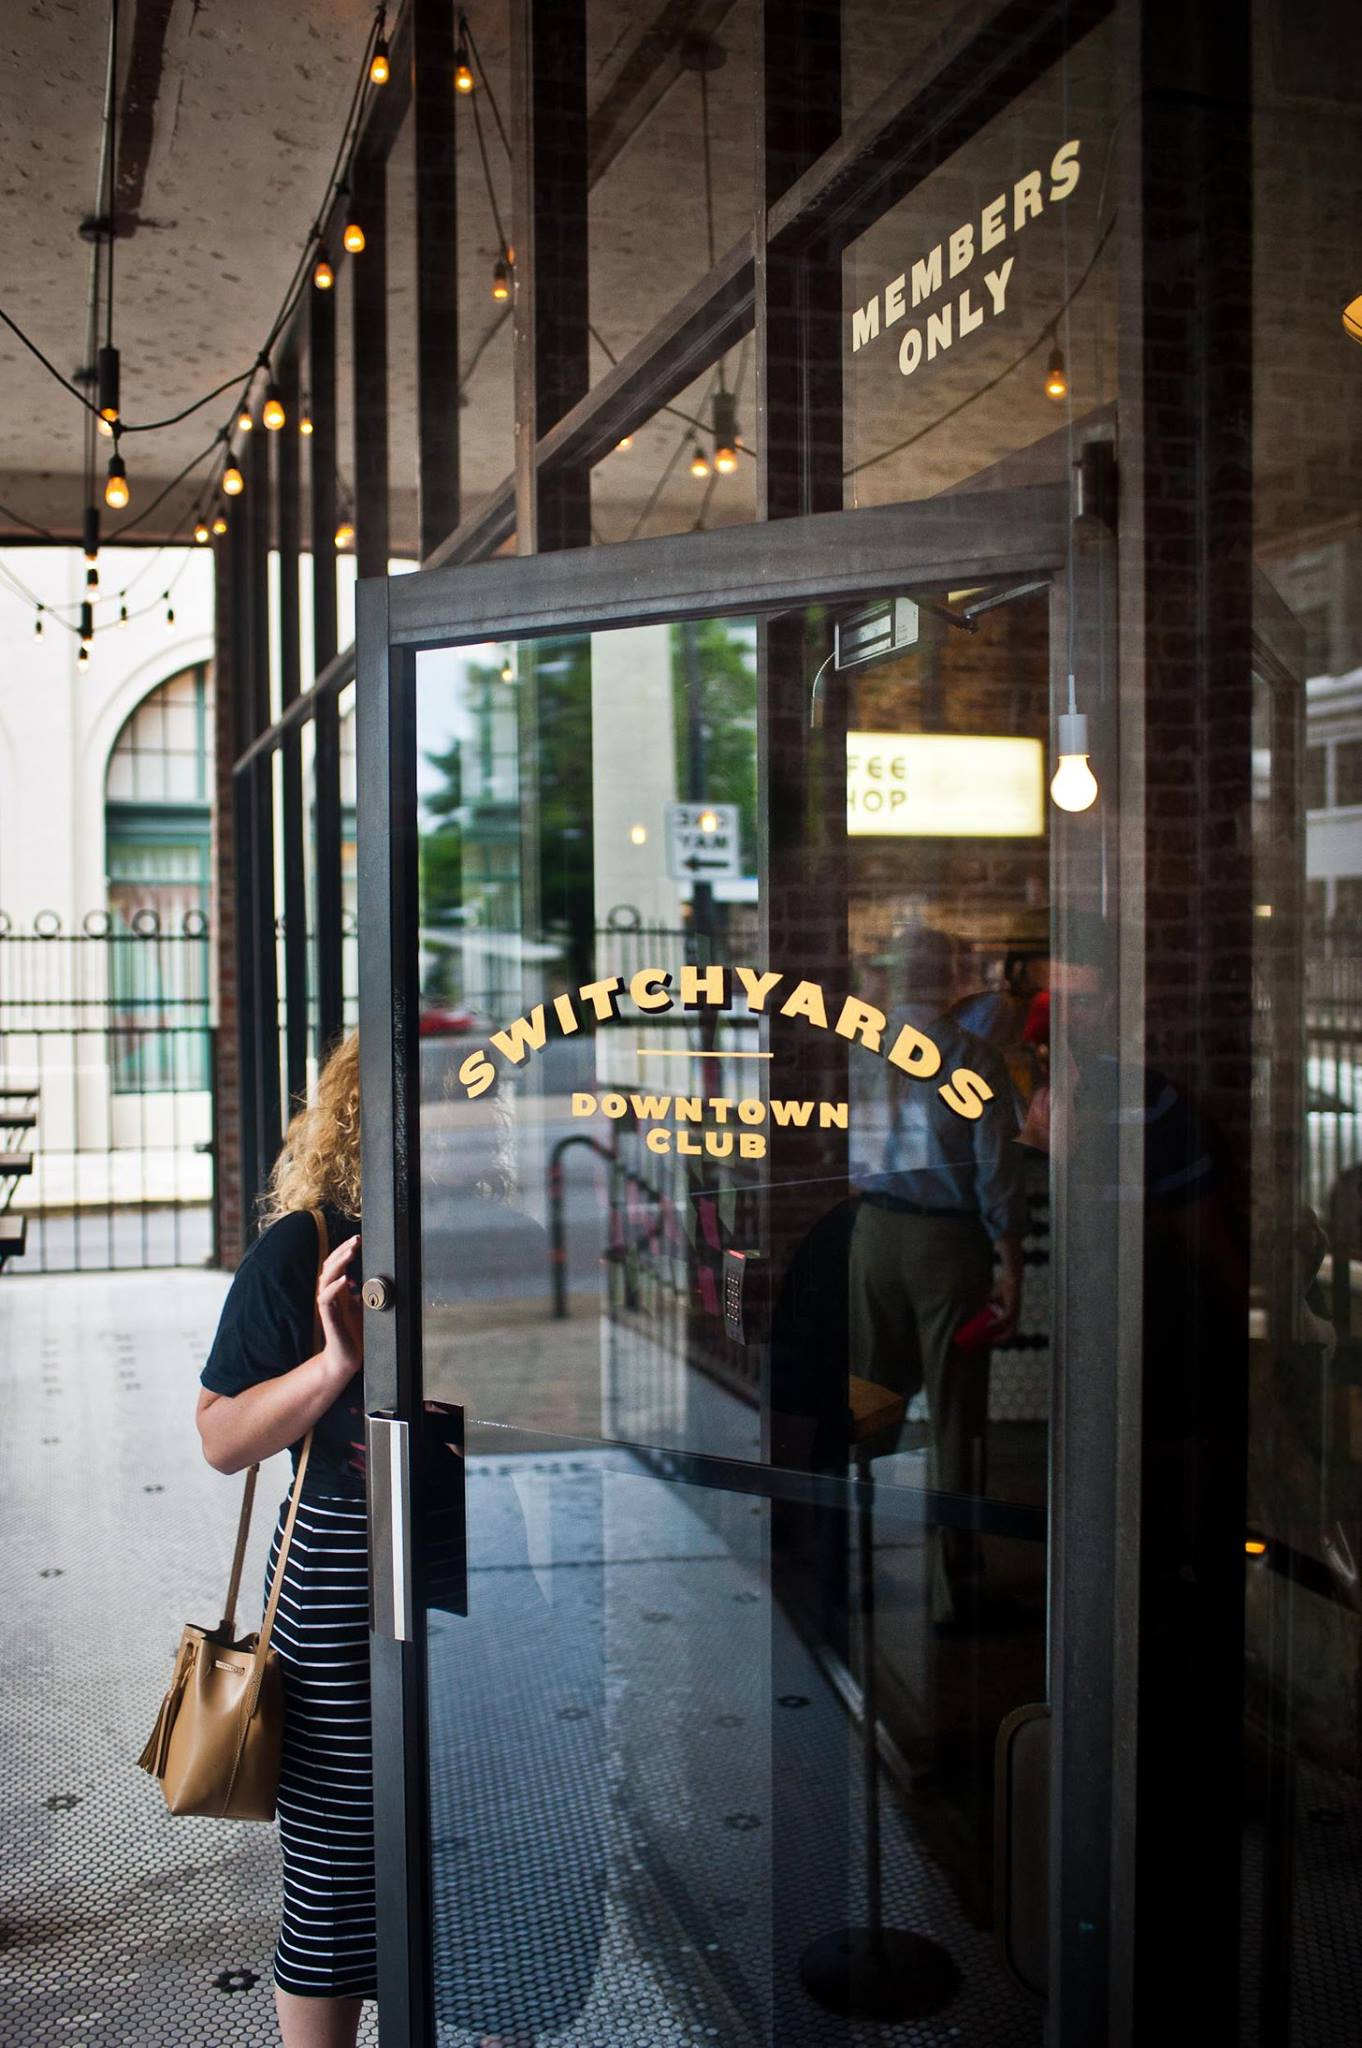 Switchyards Downtown Club . Who knows what you'll find inside? PHOTO: Jason Seagle